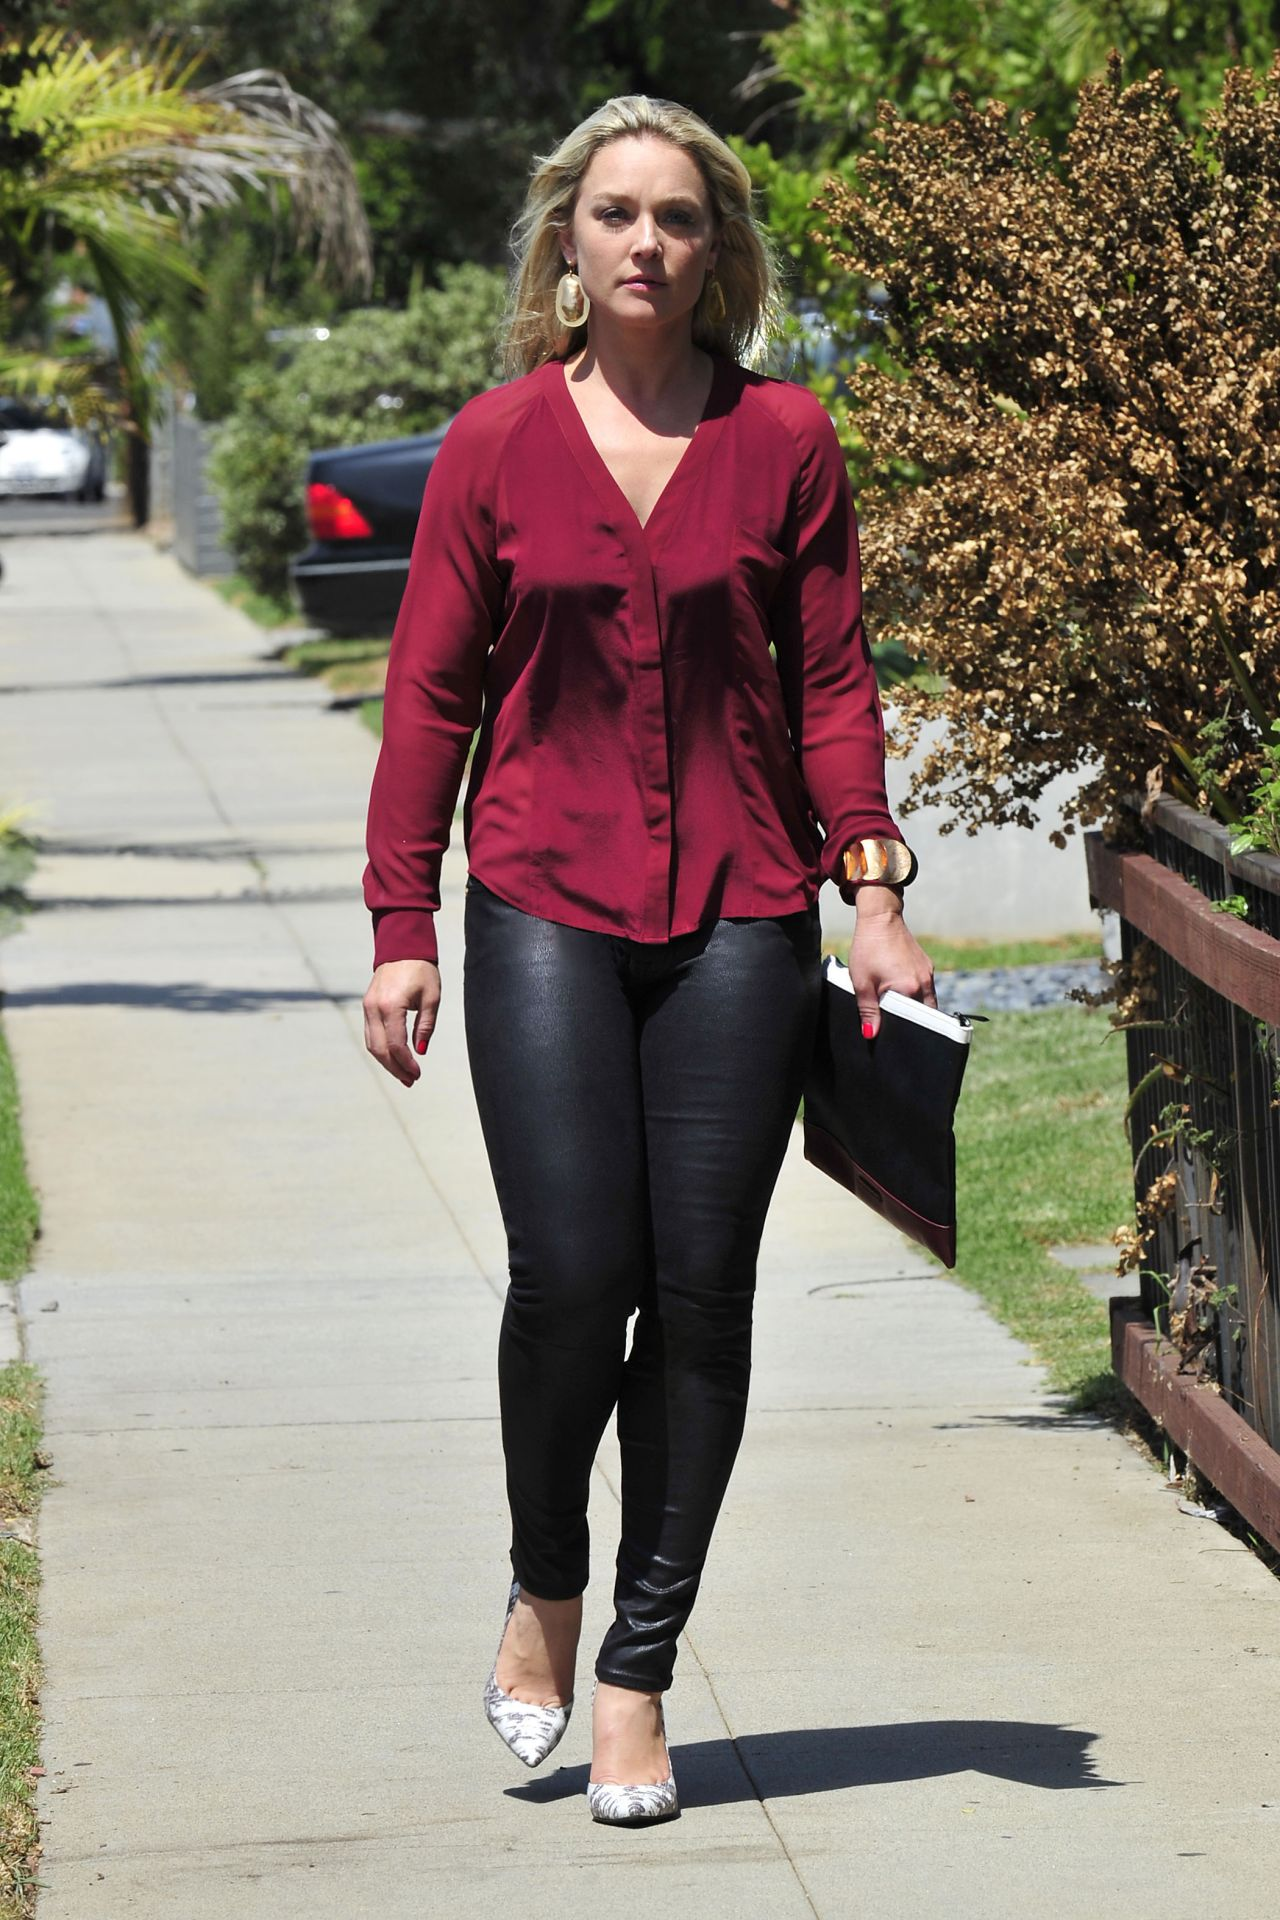 Elisabeth Rohm in Tight Pants Out in Santa Monica - September 2014